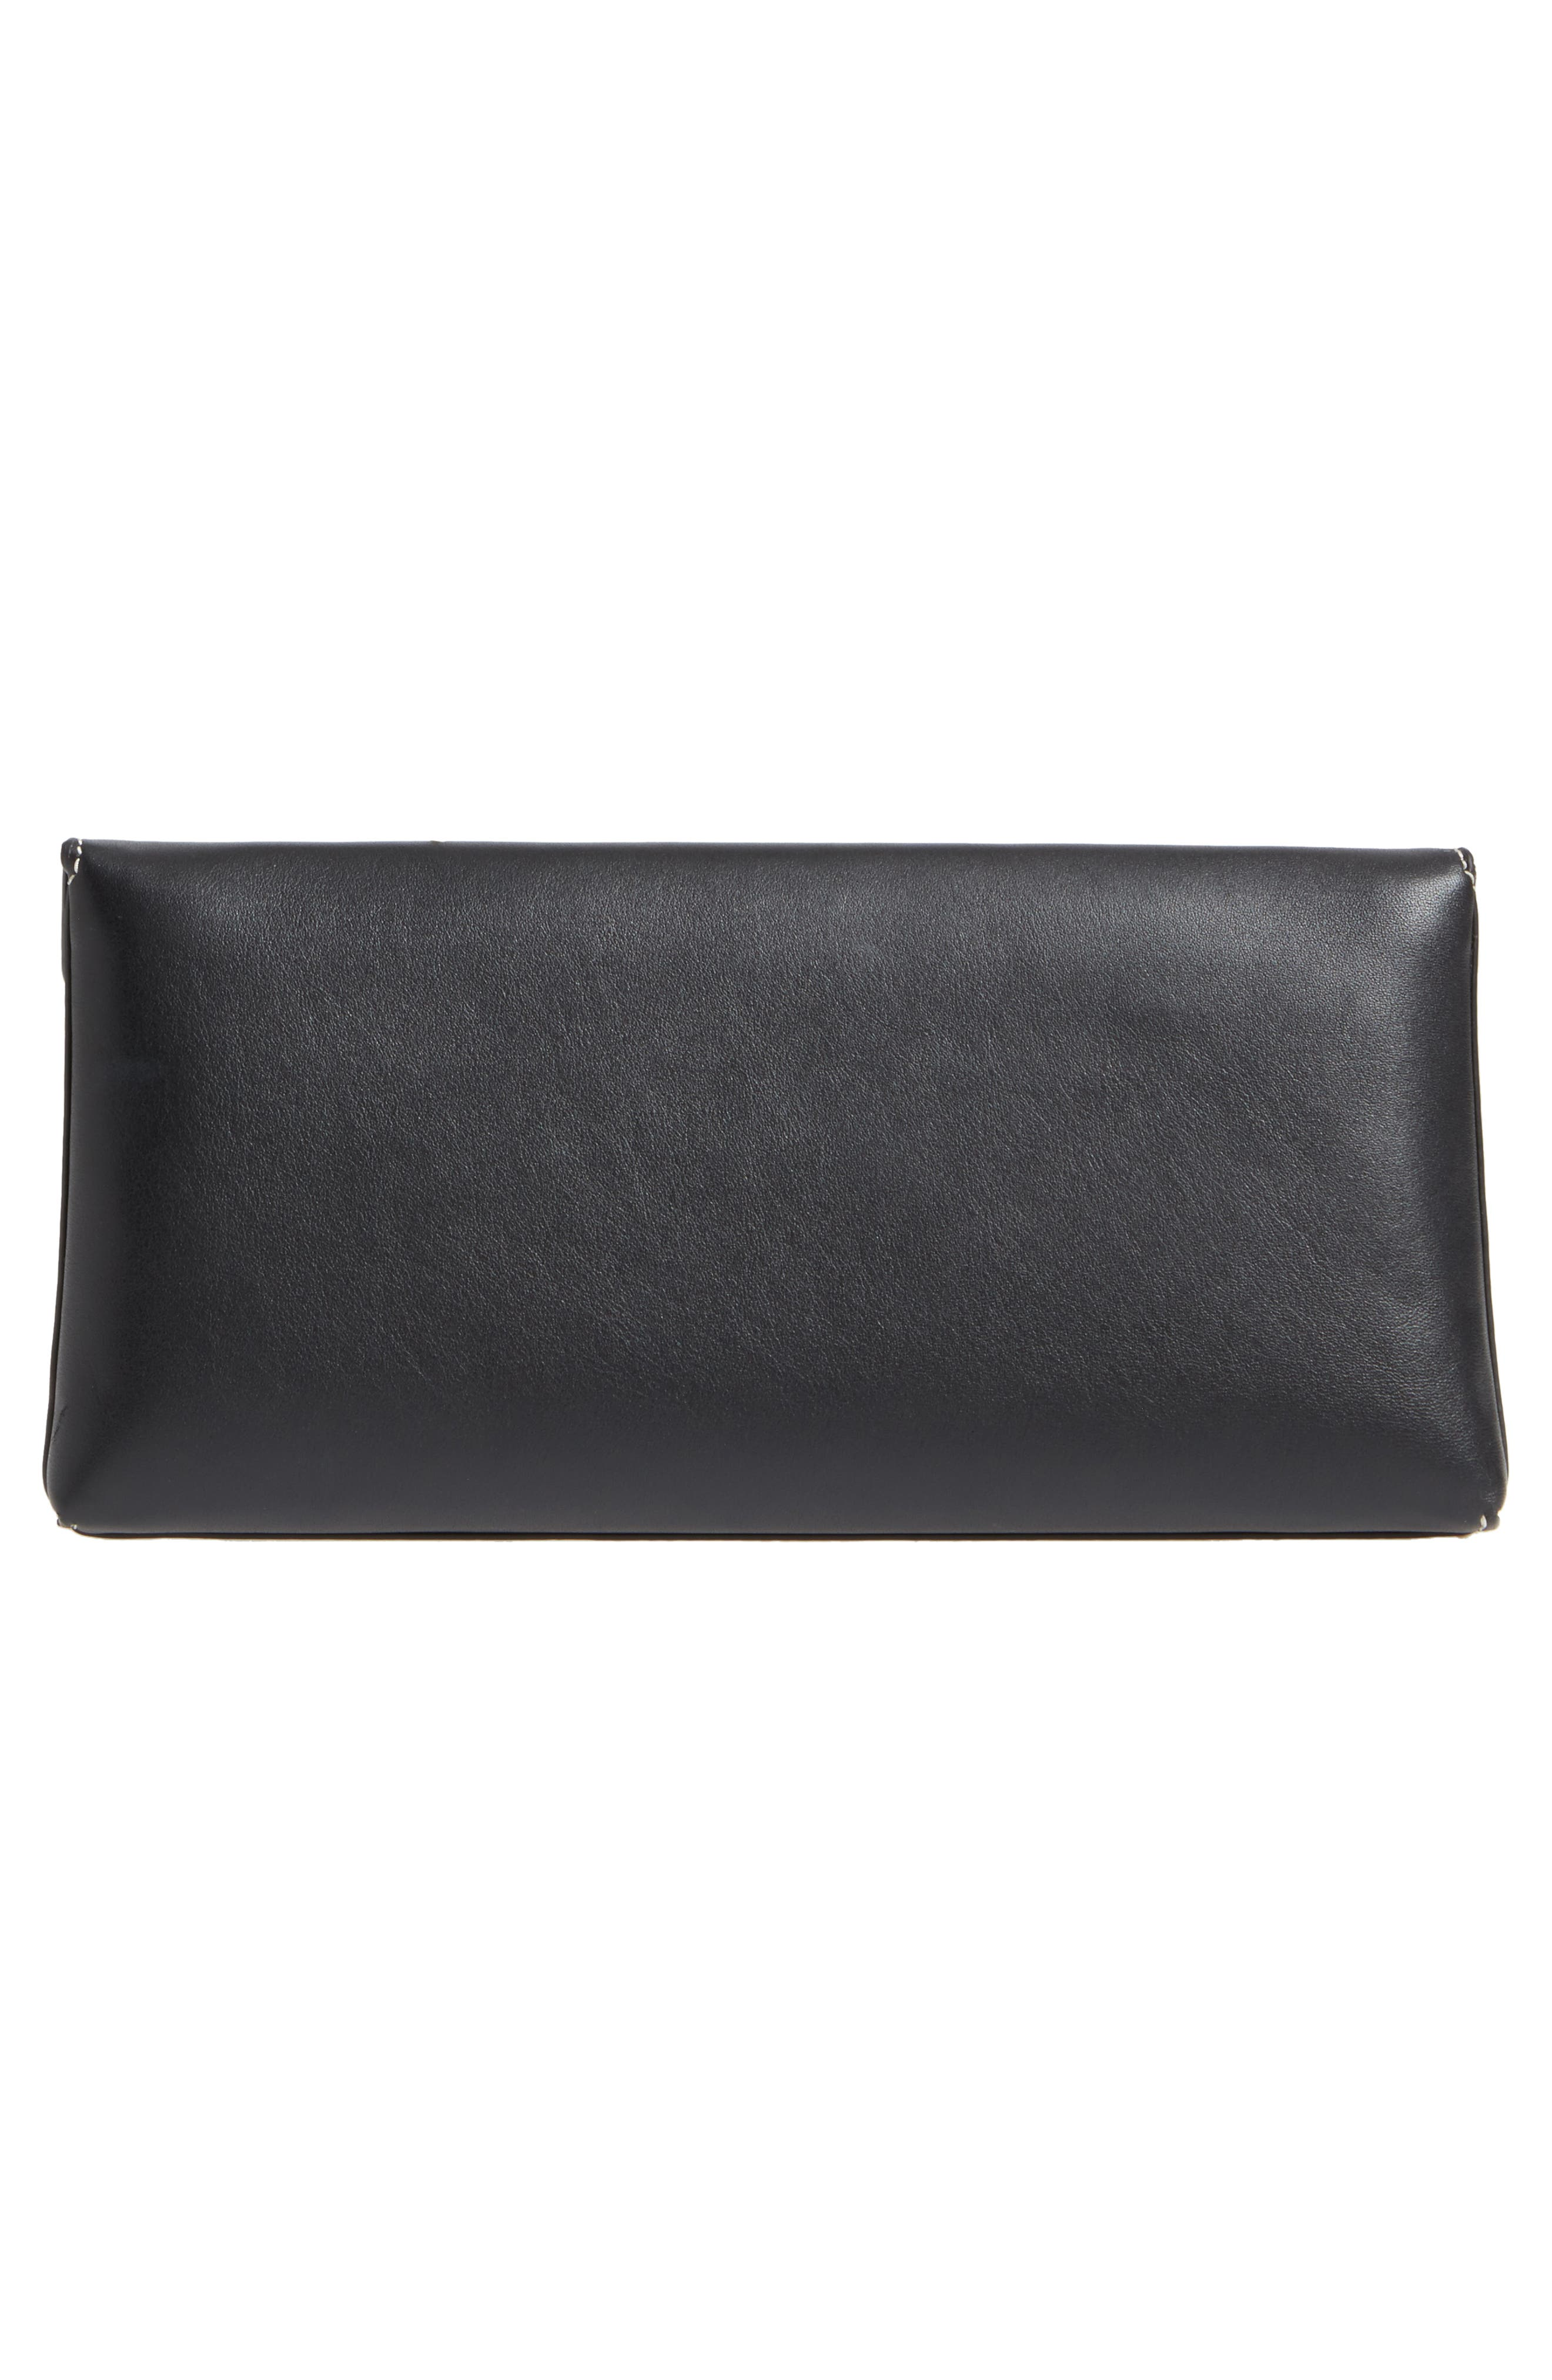 Miller Leather Clutch,                             Alternate thumbnail 3, color,                             001